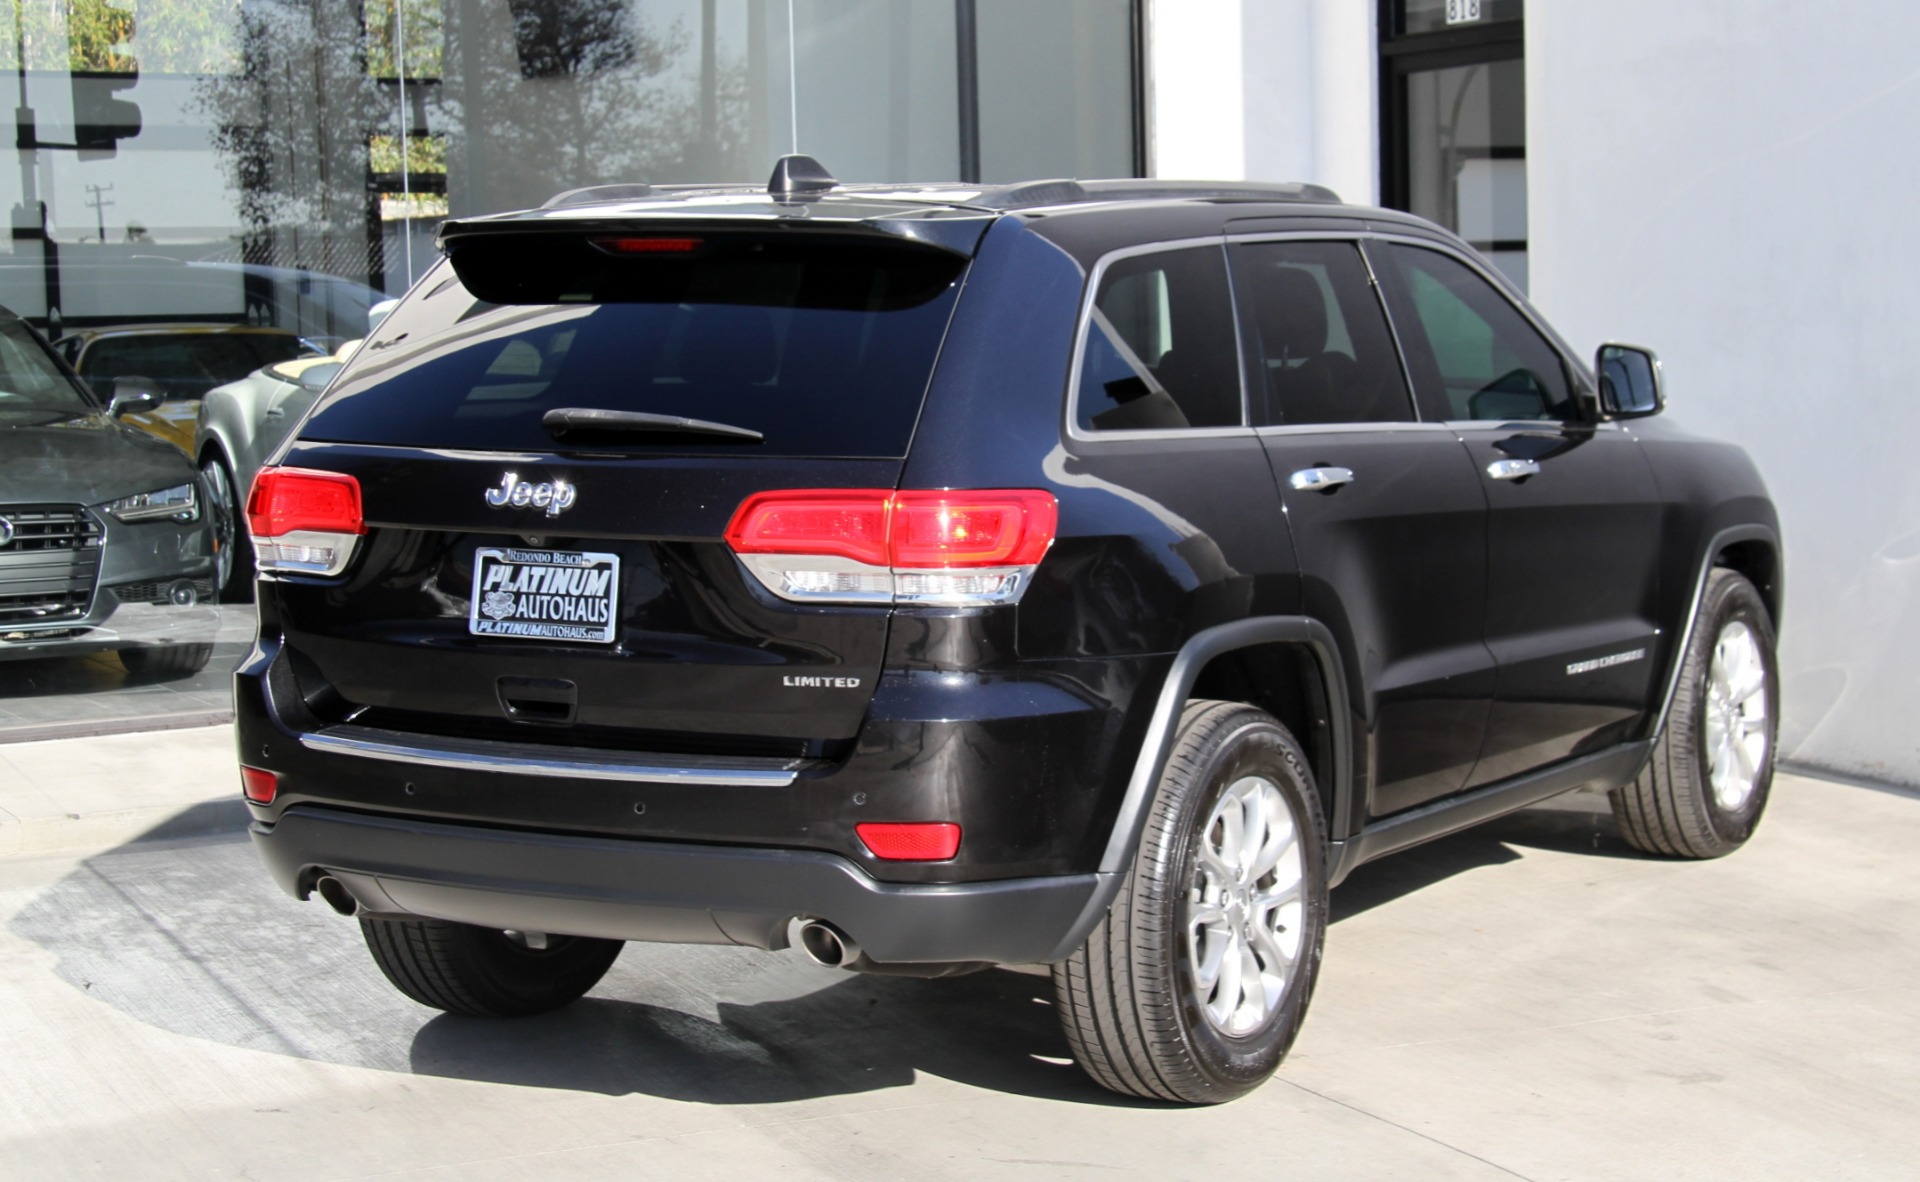 2014 jeep grand cherokee limited stock 6010b for sale near redondo beach ca ca jeep dealer. Black Bedroom Furniture Sets. Home Design Ideas